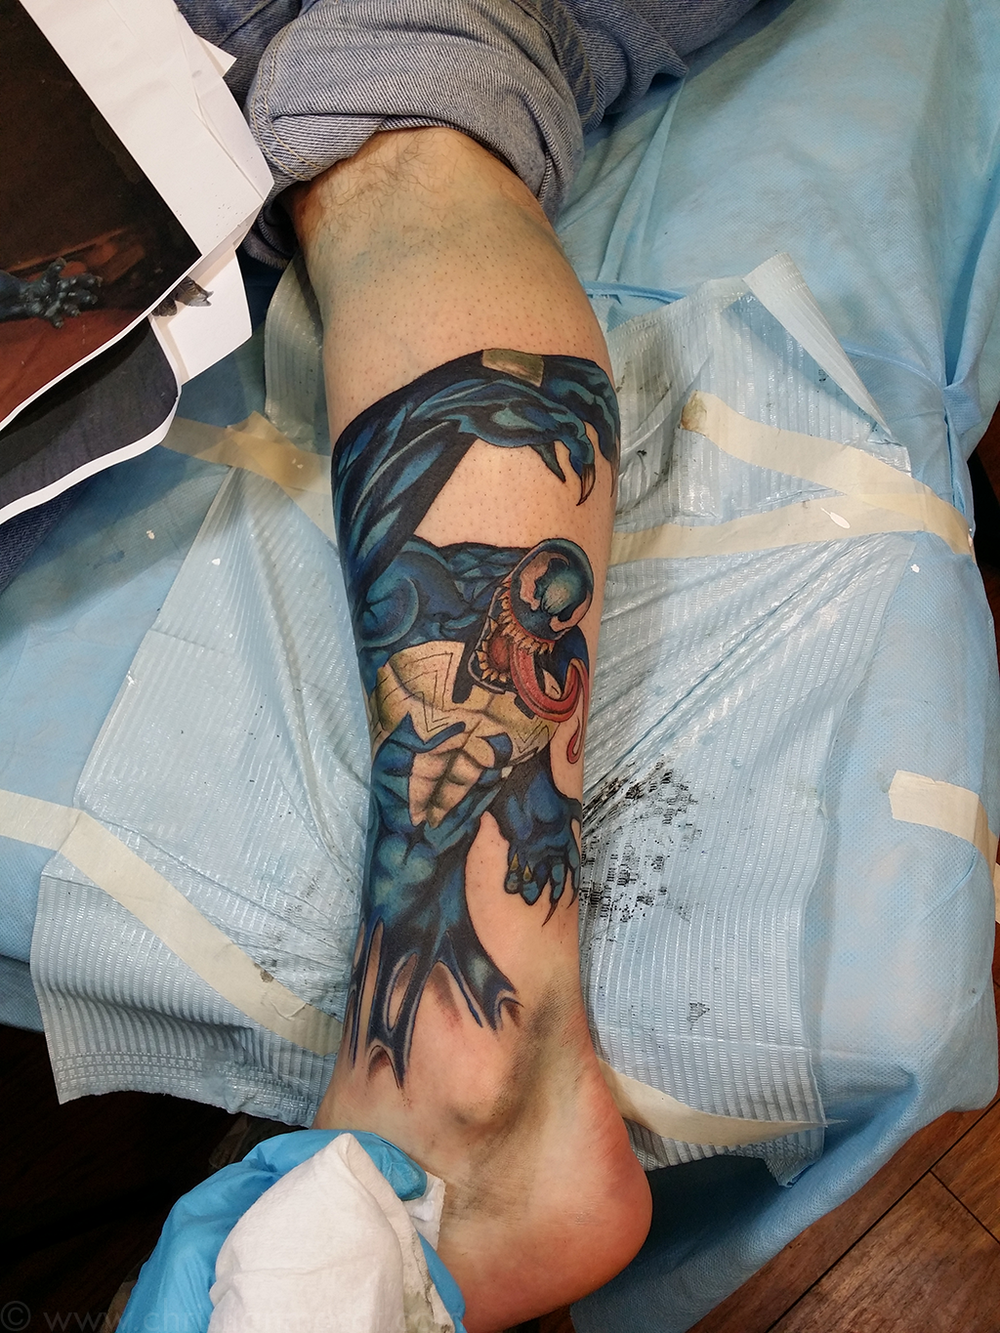 christian_masot_tattoo_06.png